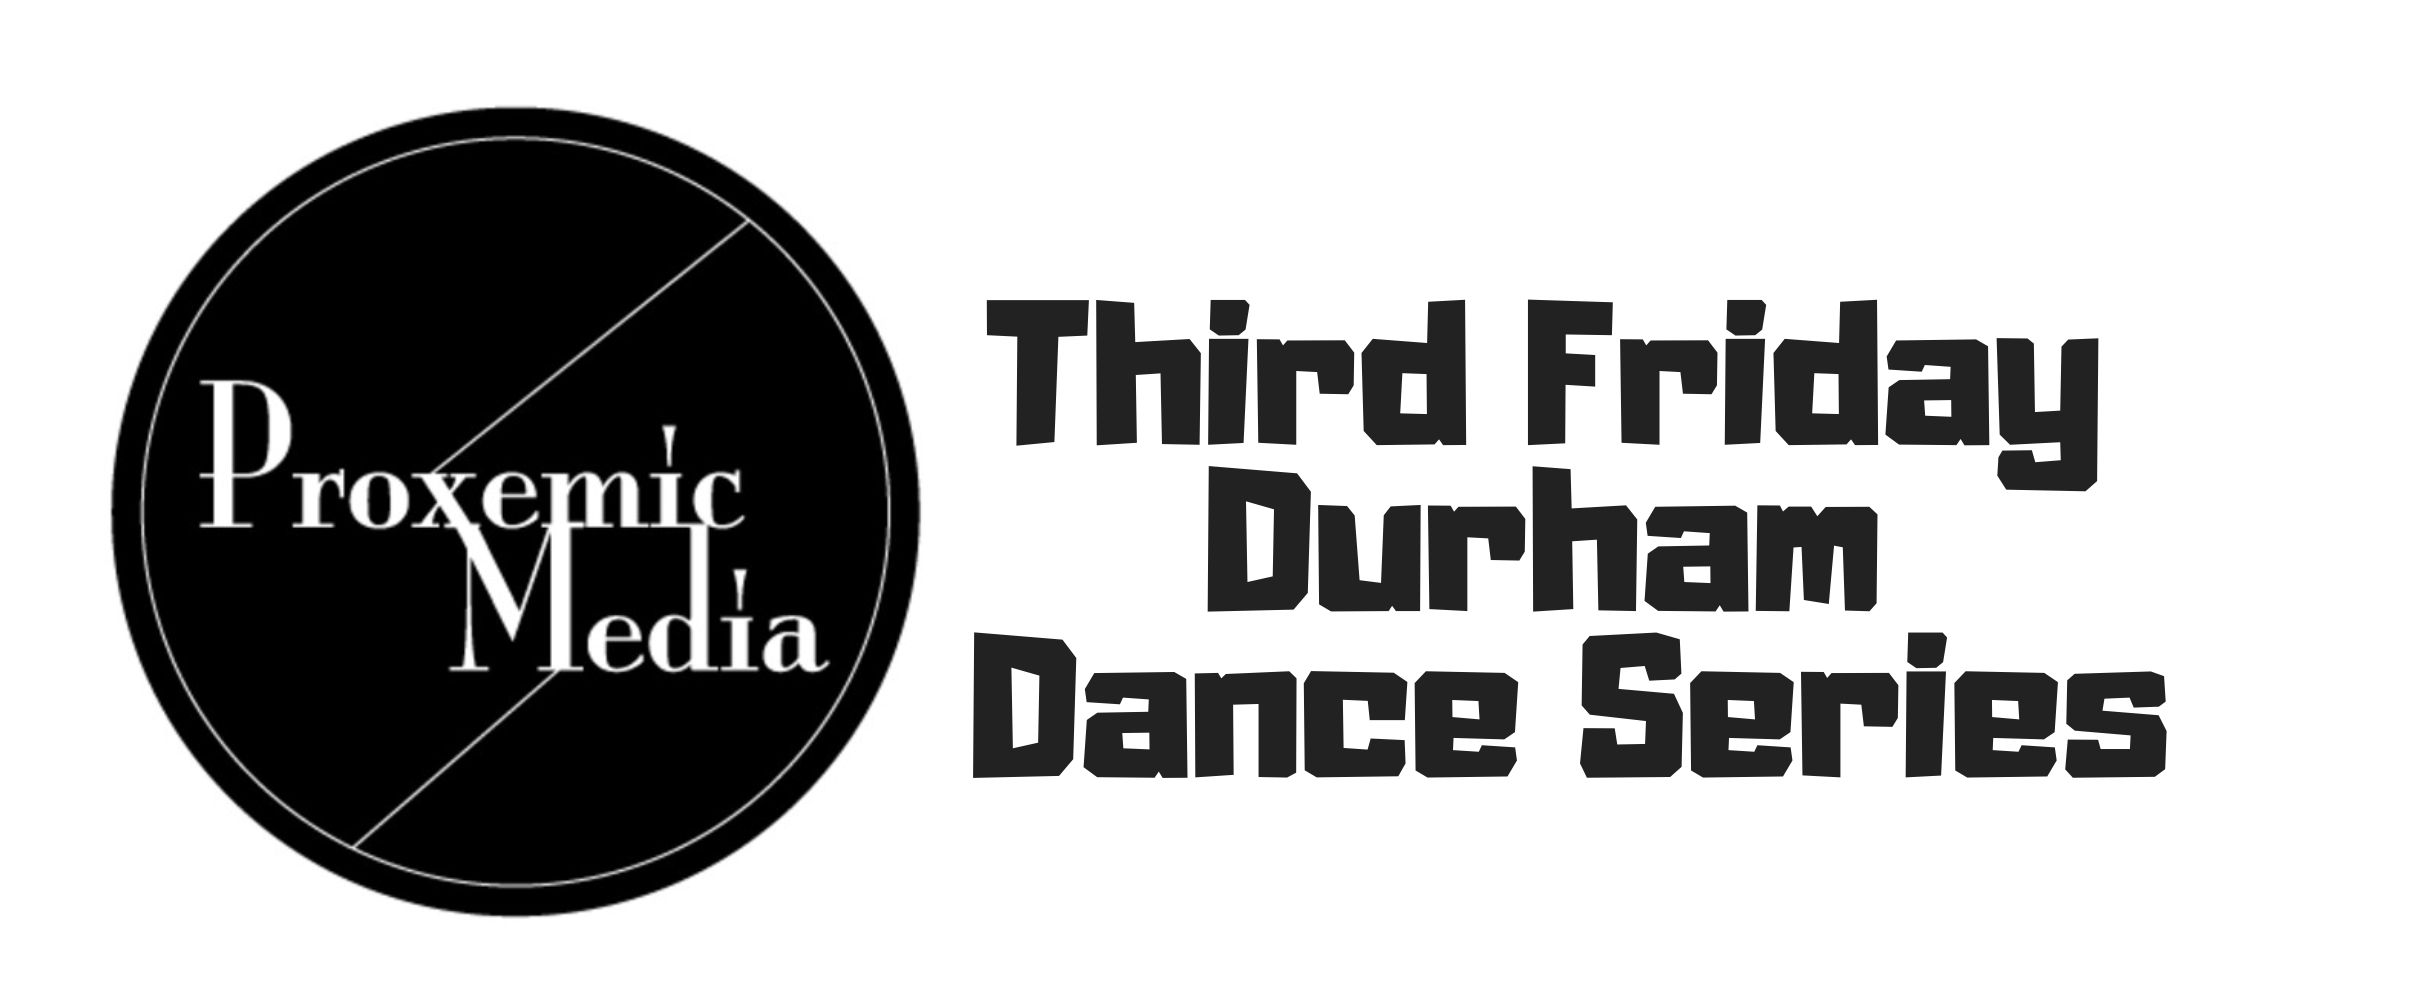 THIRD FRIDAY - Third Friday, Durham Dance SeriesFriday September 21st // 8:00pm & 9:00pmEmpower Dance Studio6 Forms of Fear - Excerpt